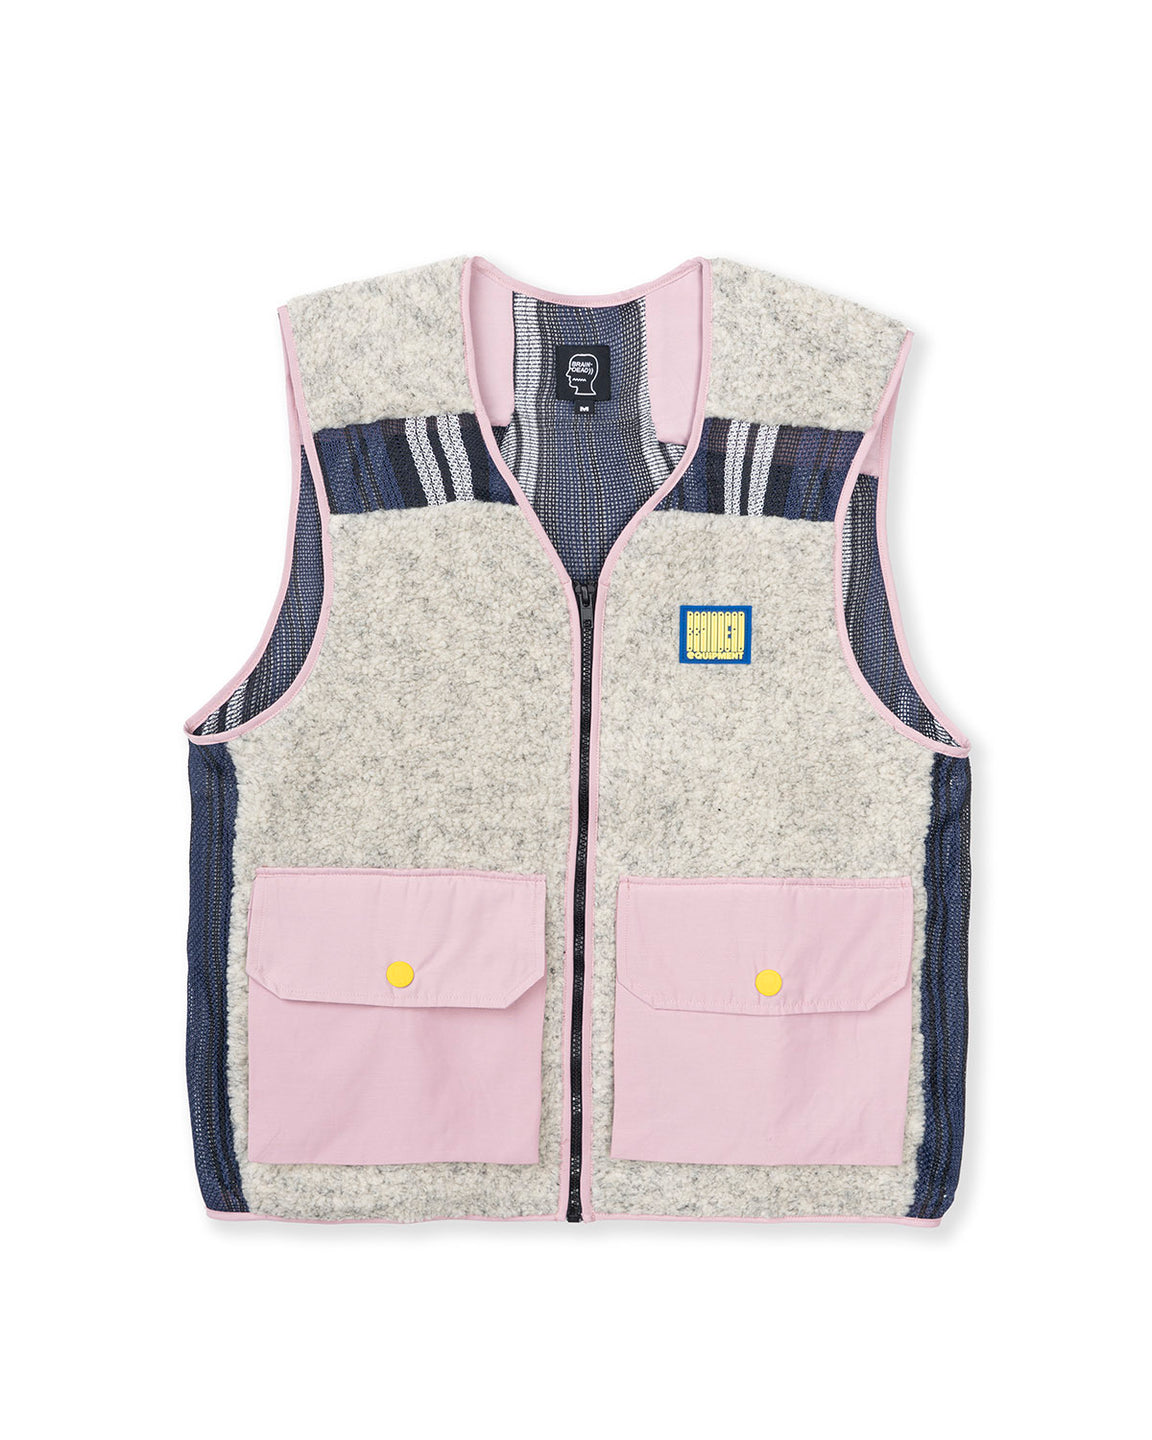 Sherpa Tactical Vest - Cream/Dust Pink